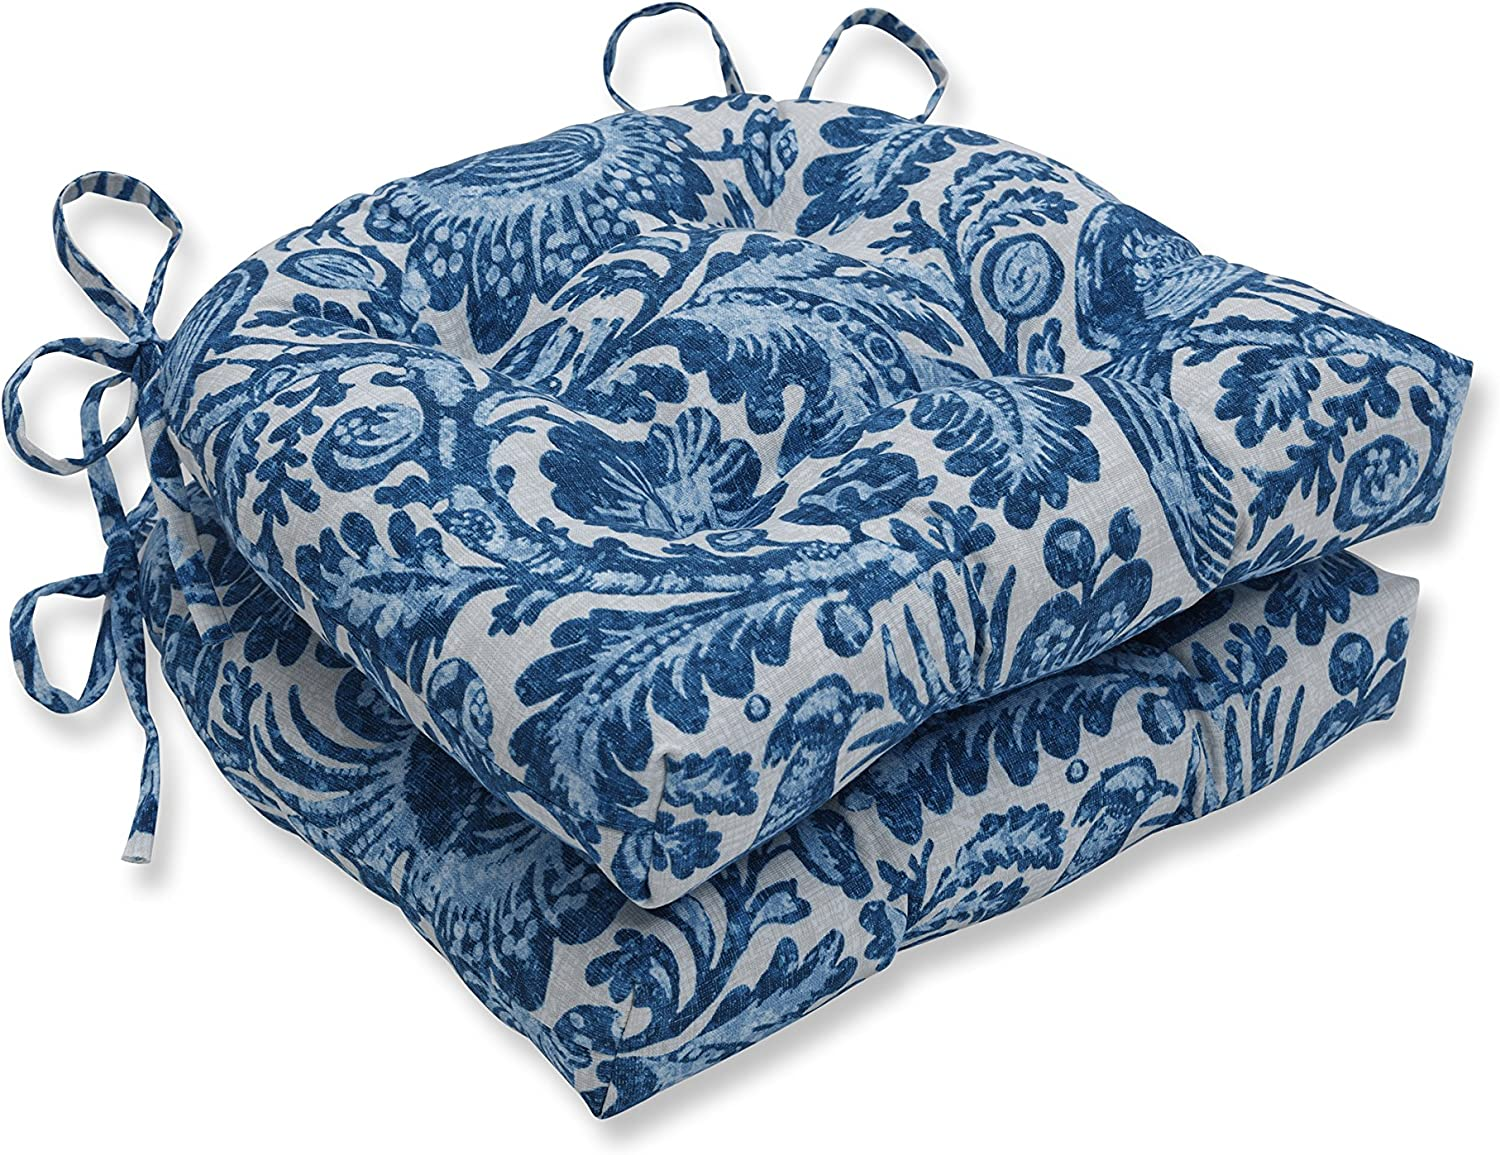 Pillow Perfect Outdoor | Indoor Tucker Resist Azure Reversible Chair Pad (Set of 2), Blue 16 X 15.5 X 4